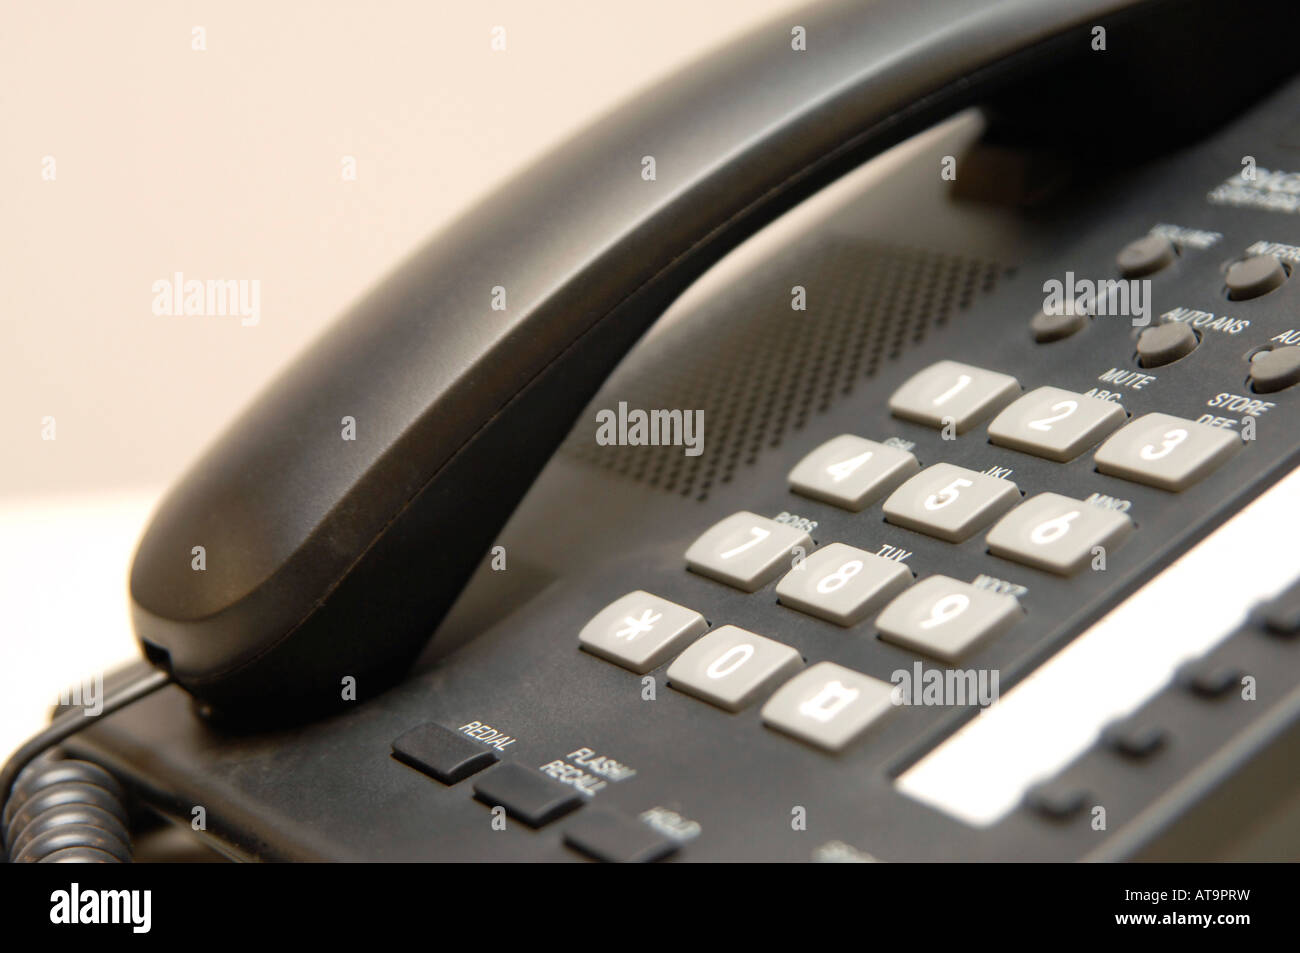 Office telephone - Stock Image